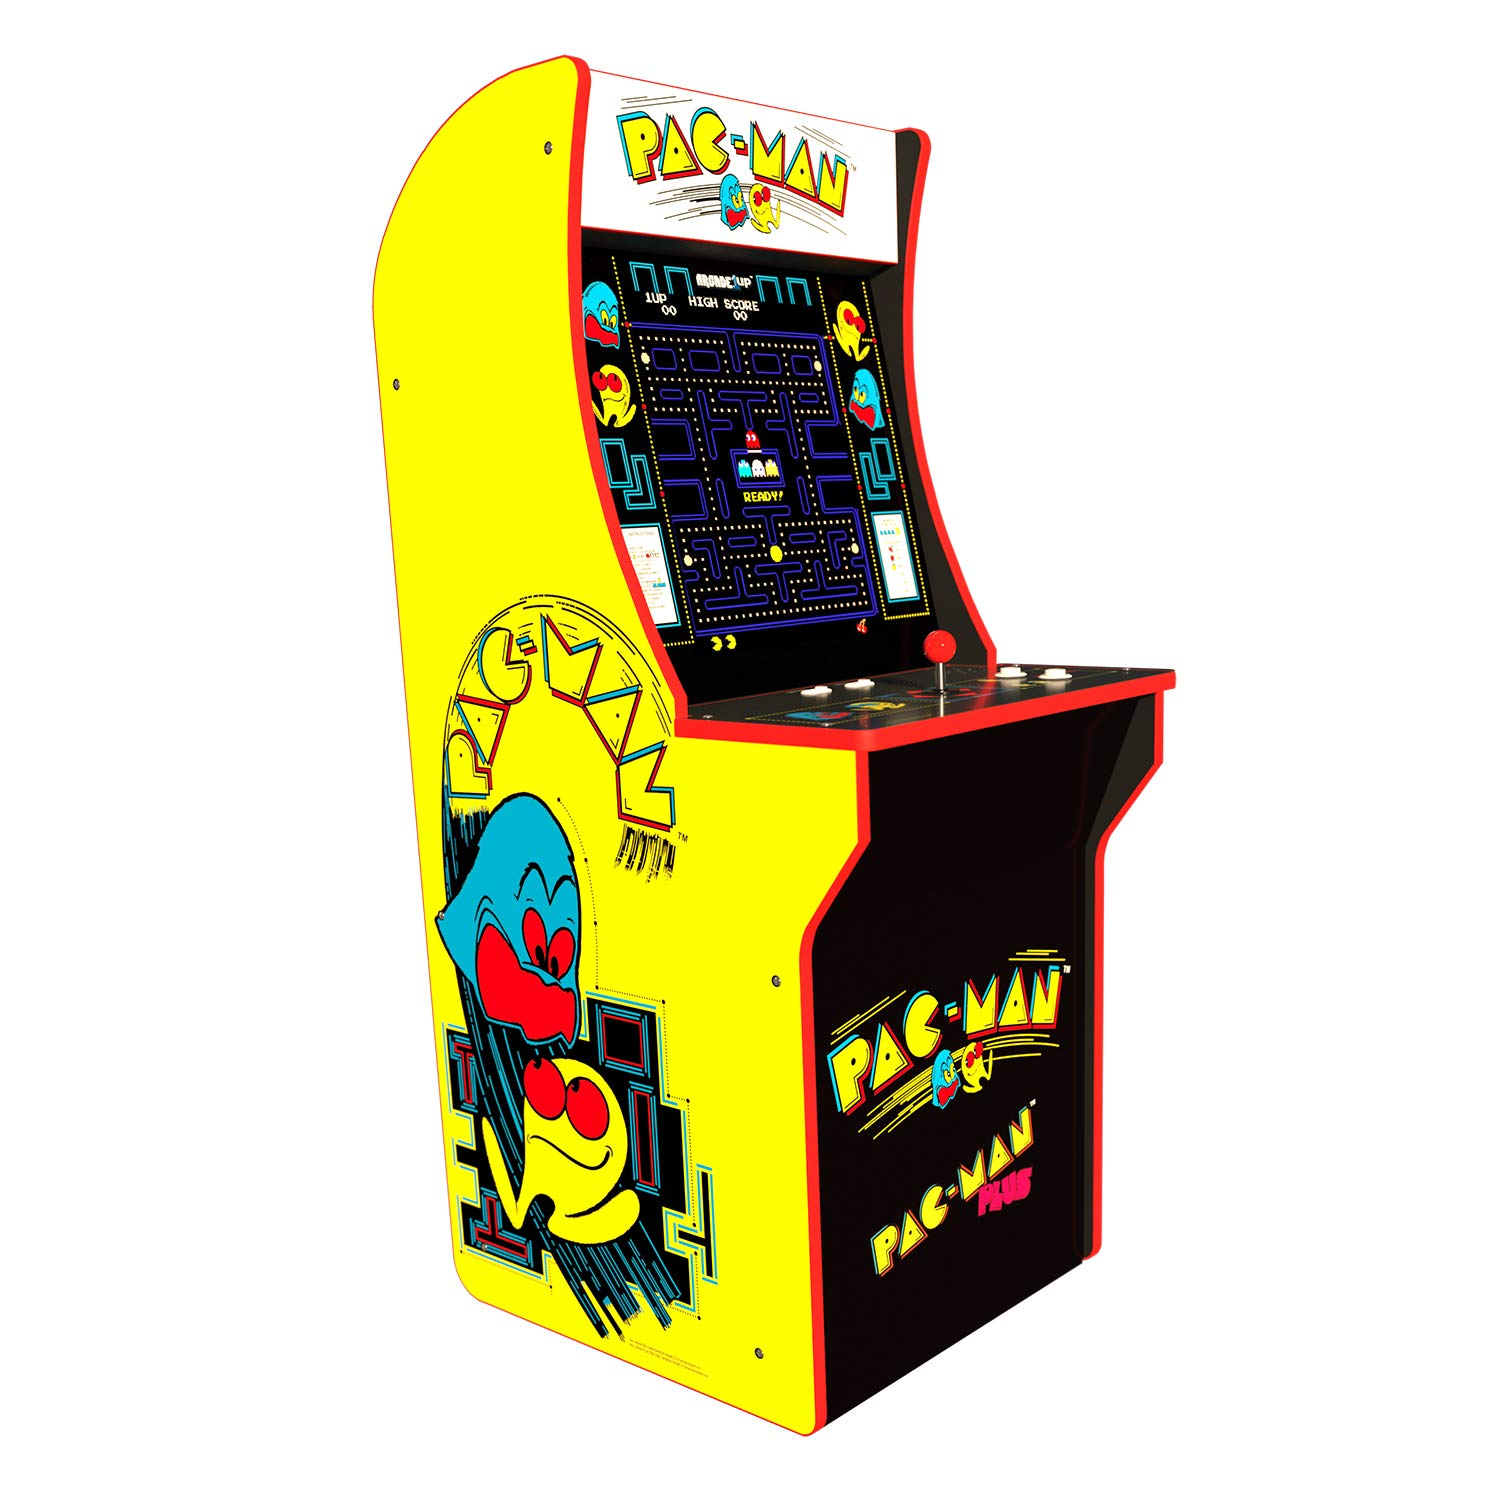 Arcade 1Up Pac-Man Deluxe Arcade System with Riser, 5ft by Arcade 1Up (Image #5)